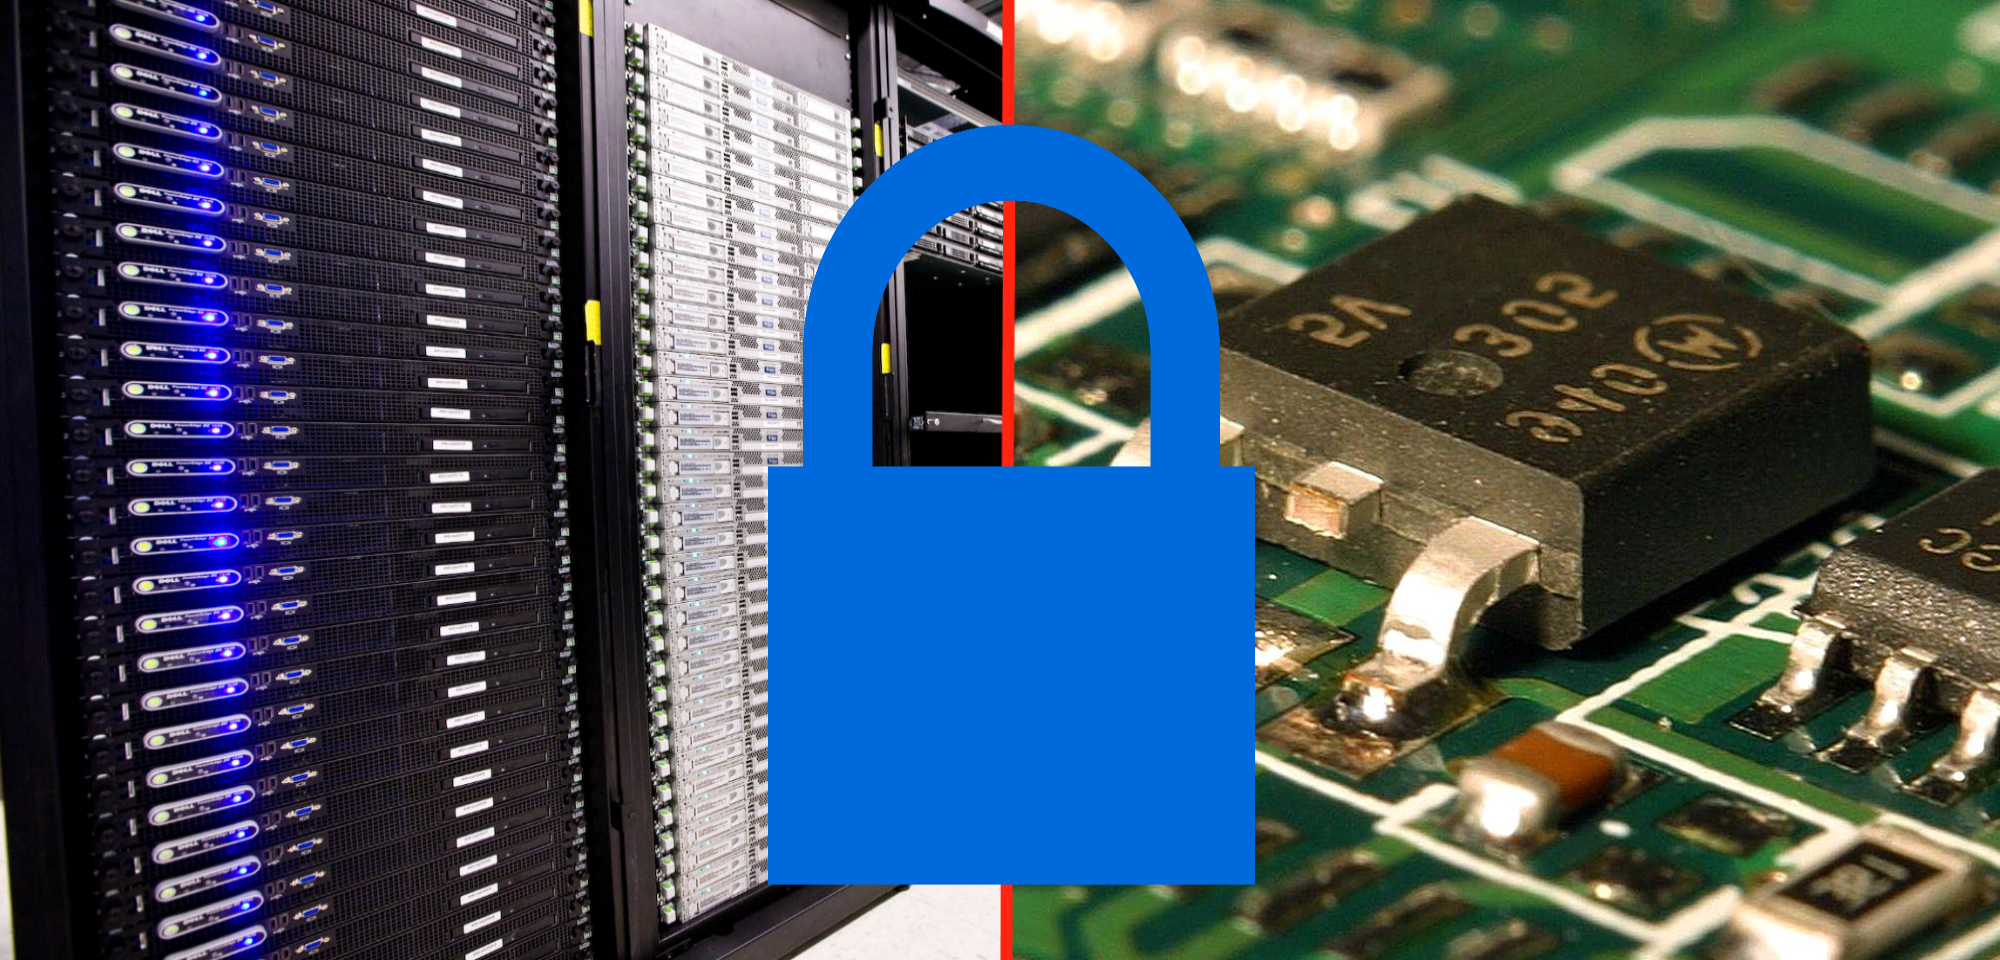 Root of Trust:Cybersecurity for MIS/IT vs. Embedded Systems